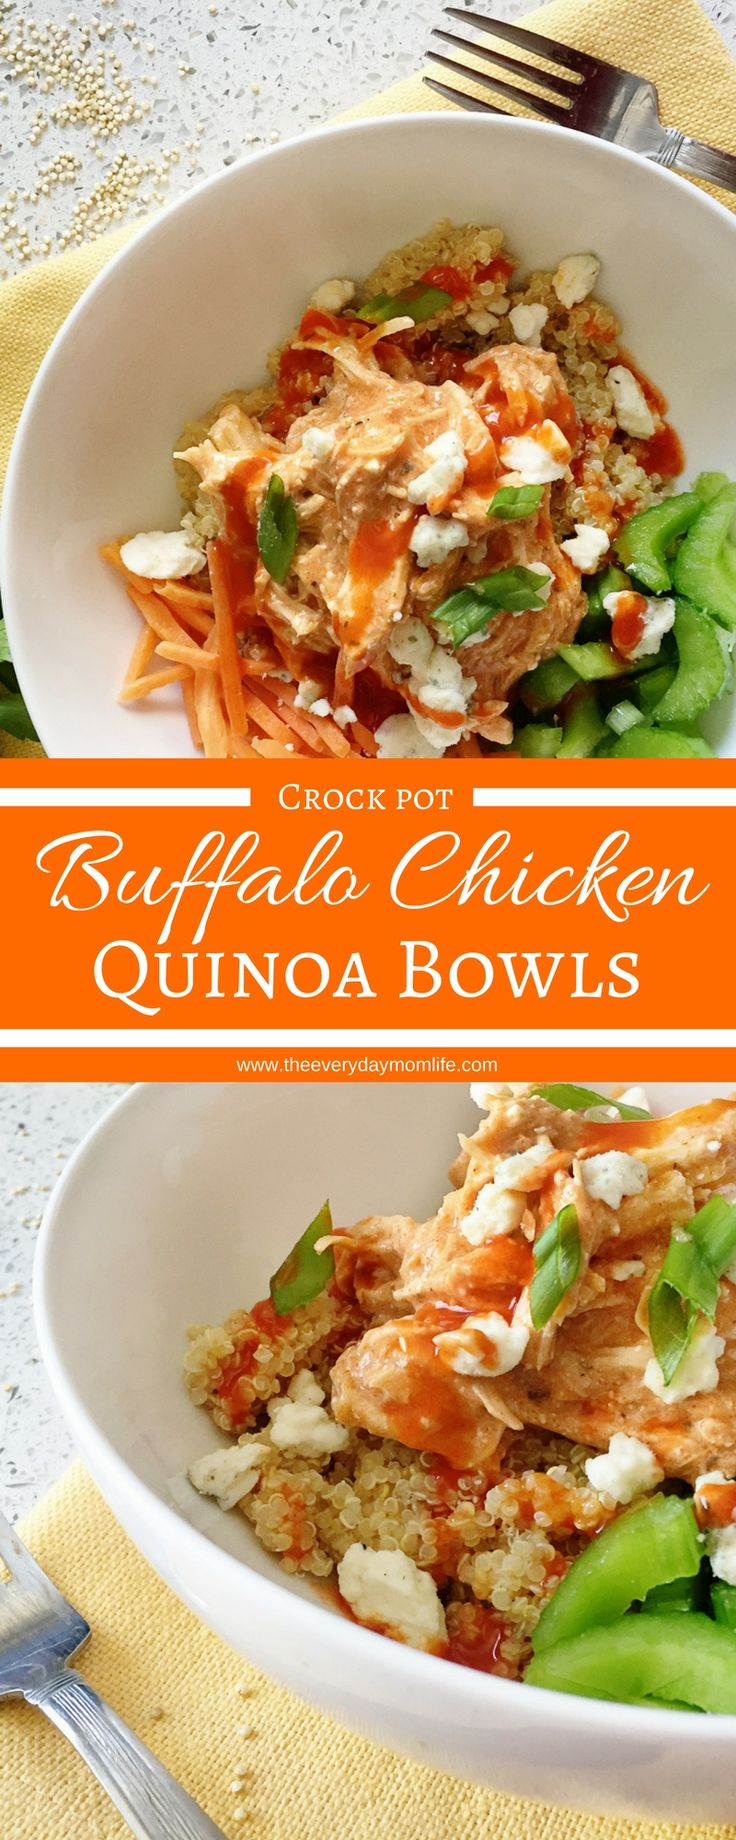 Buffalo Chicken Quinoa Bowls recipe spices up dinner with that tangy and fun taste of buffalo. Make the chicken in the crock pot and then top any number of things. This is great for leftovers and a great family dinner.